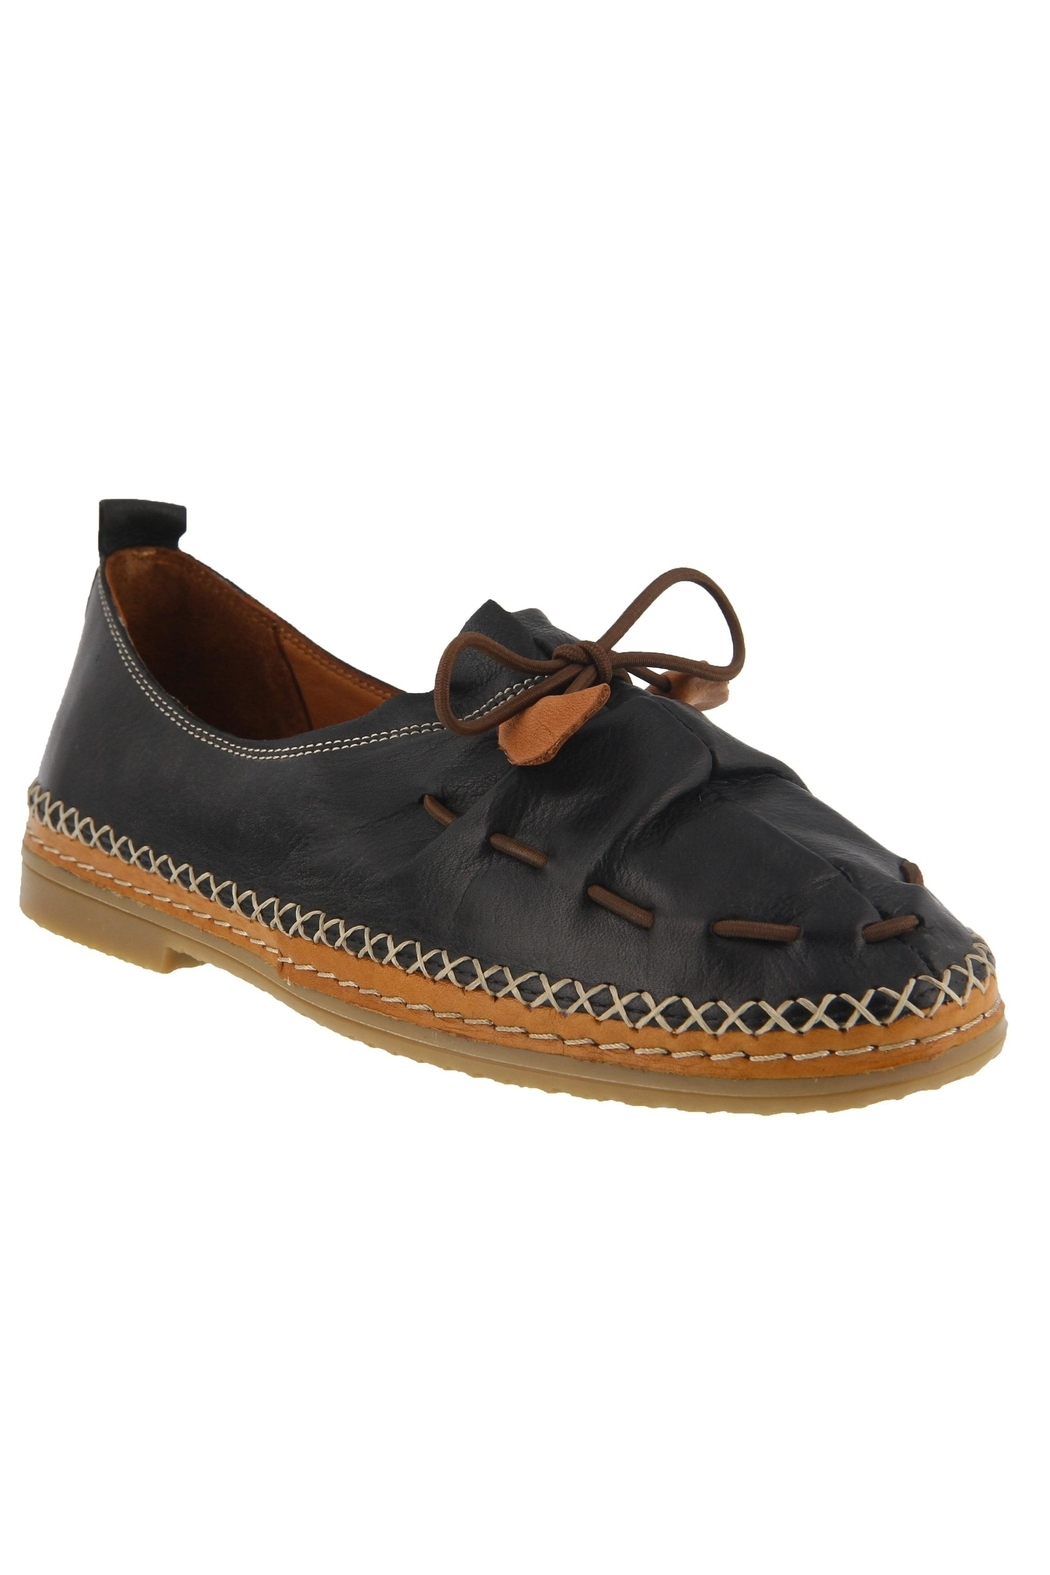 Spring Footwear Leather Moccasin - Front Cropped Image